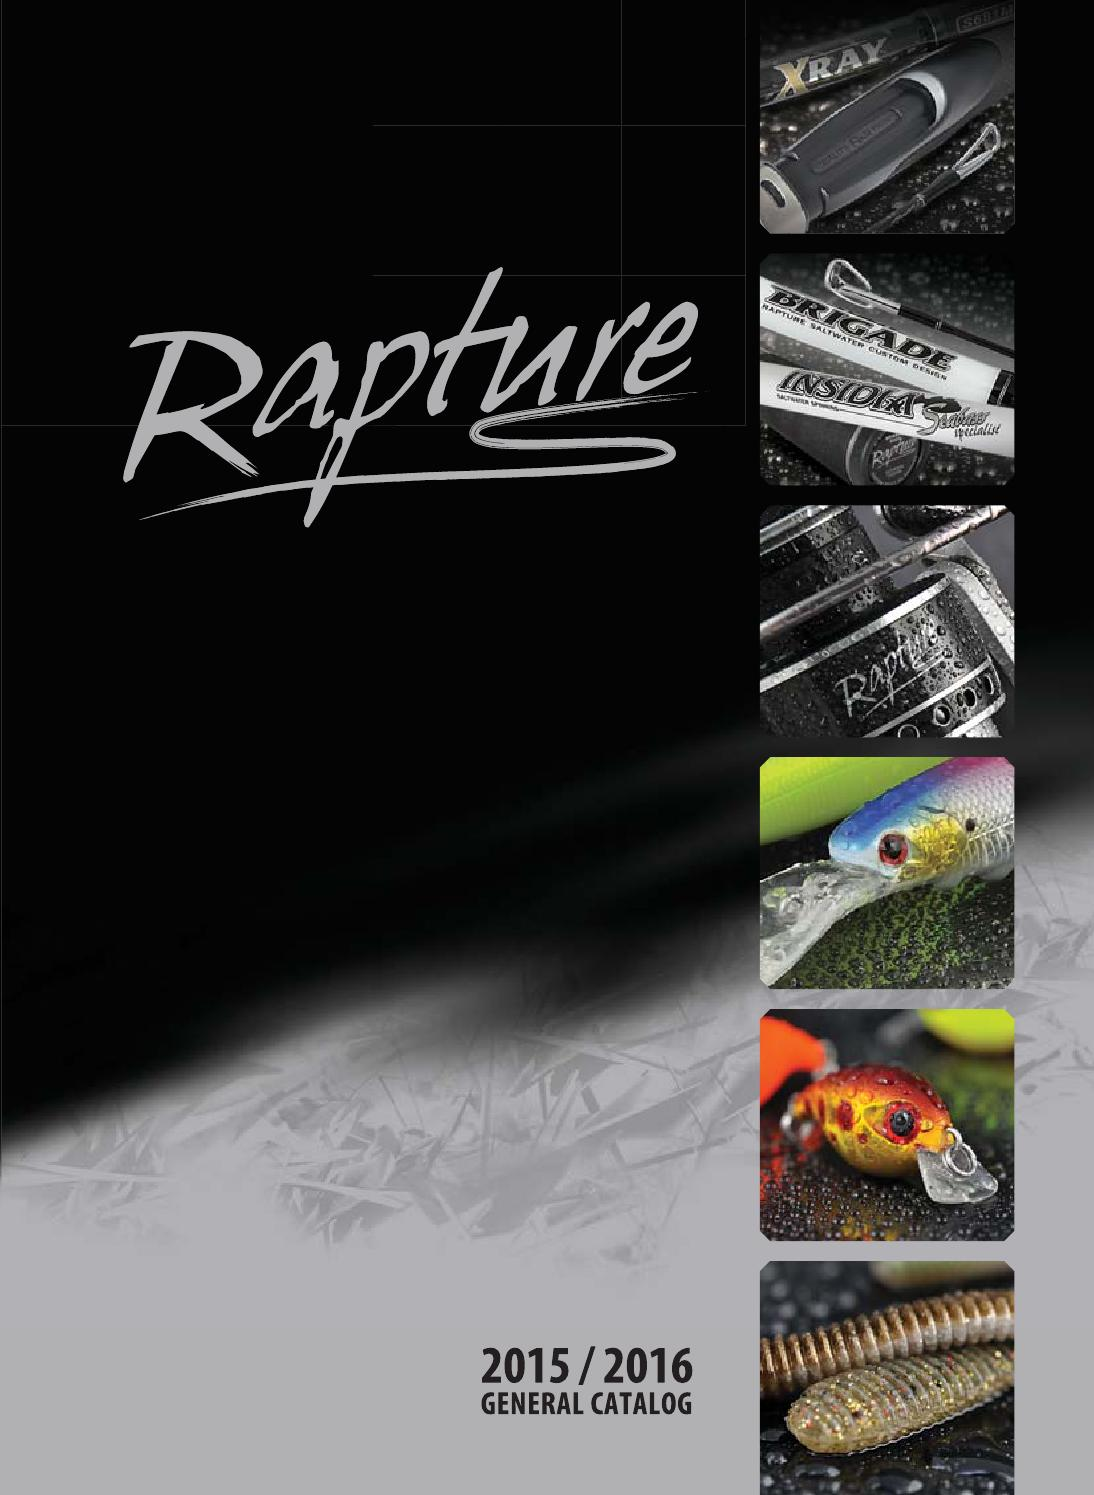 trabucco 3 versions from Rapture .all stainless Sea fishing non rust pliers